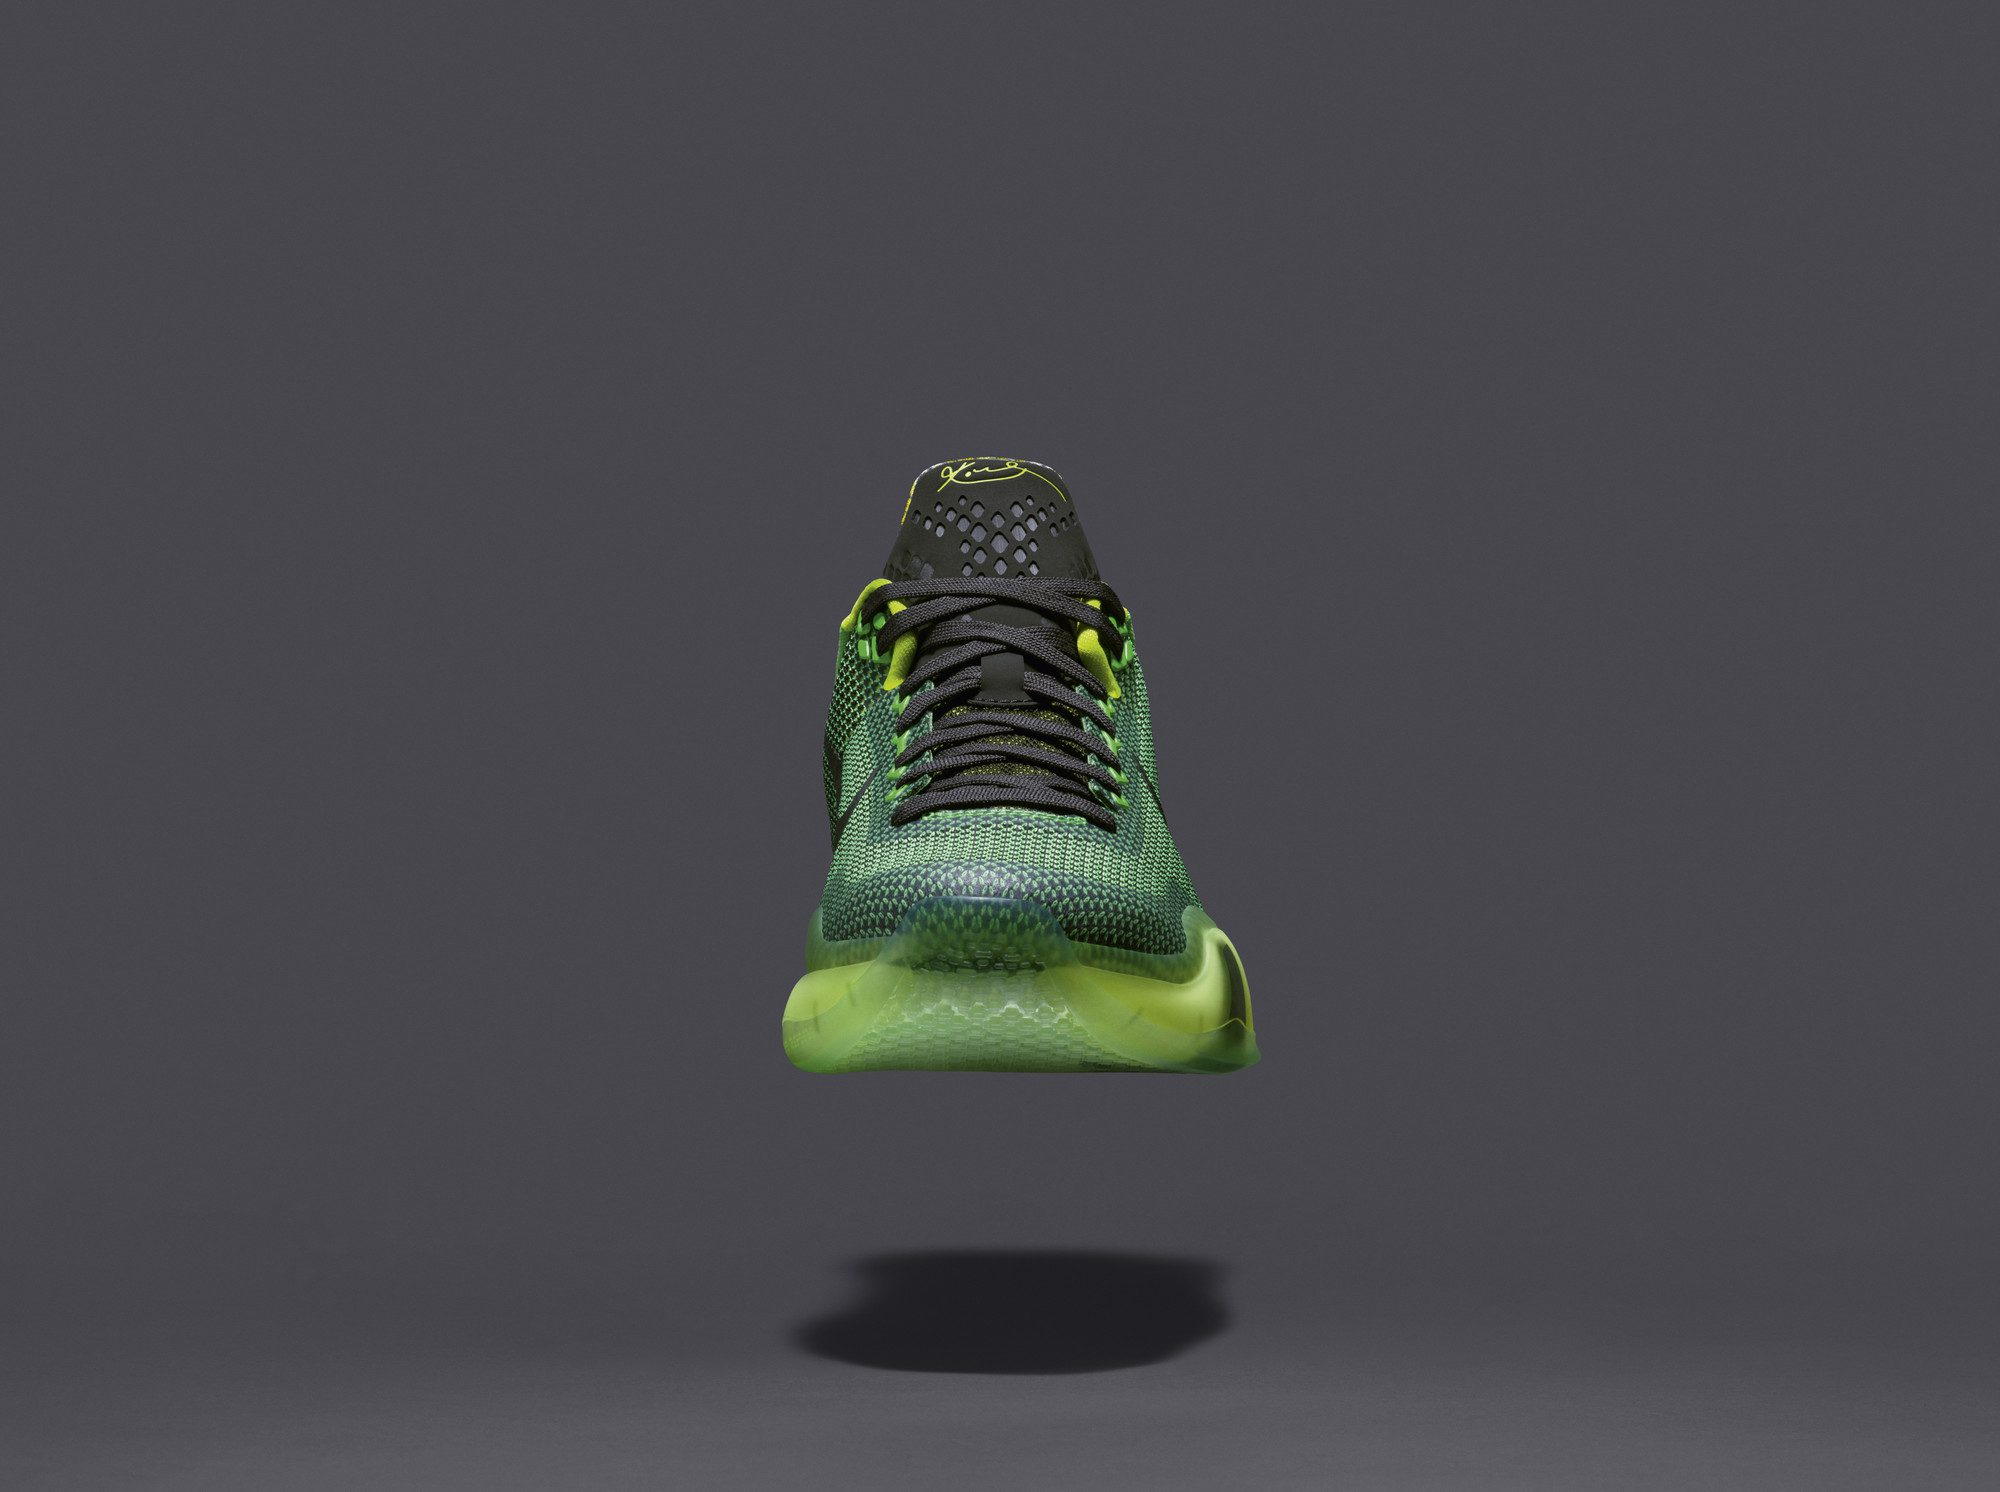 SP15_BB_KOBE_X_705317-333_Toe_38164